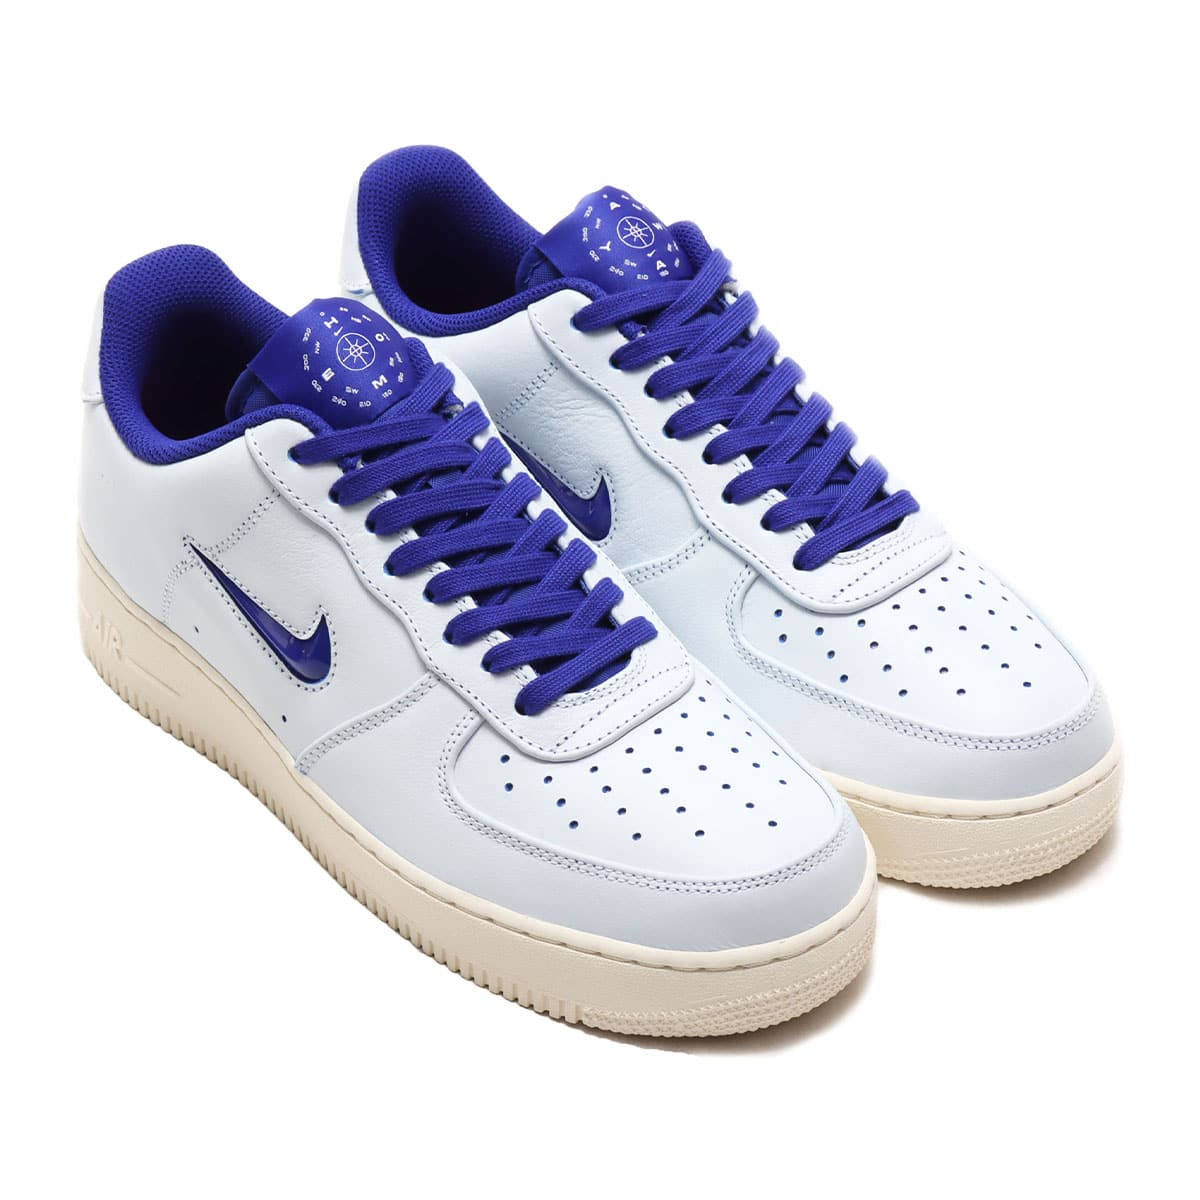 NIKE AIR FORCE 1 '07 PRM WHITE/CONCORD-SAIL-UNIVERSITY RED 20SU-S_photo_large